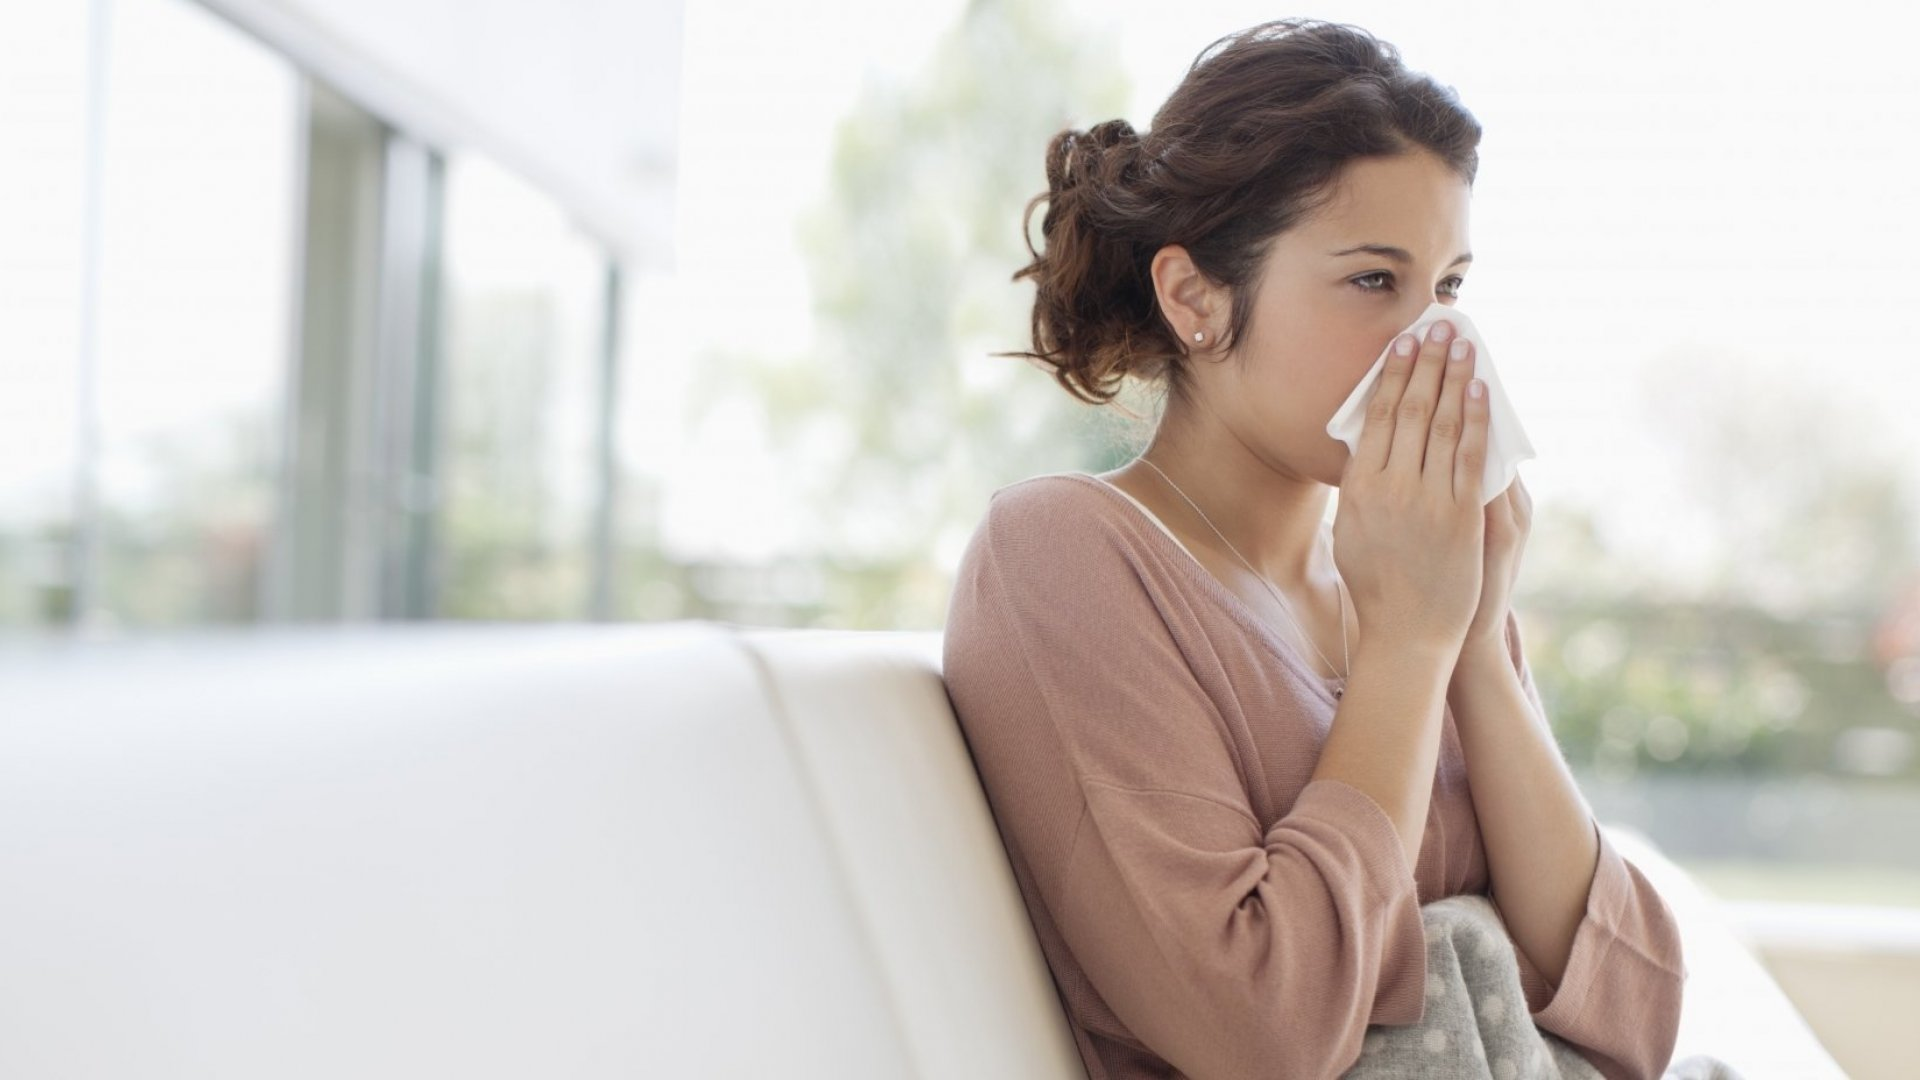 3 Reasons Why You're Doing Sick Days All Wrong (and What to Do Instead)